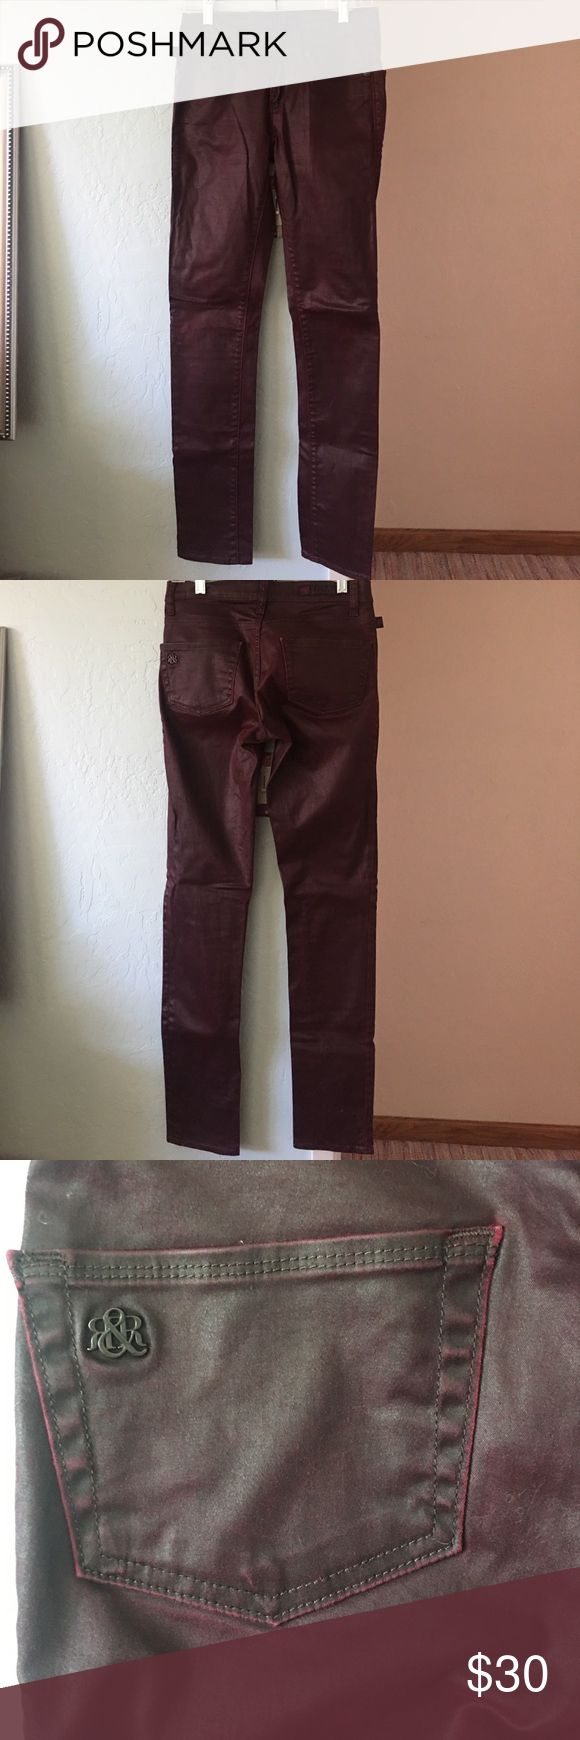 Oxblood Rock & Republic jeans size 2 Worn 3 or 4 times, excellent condition, oxblood red, waxy finish size 2 Rock & Republic jeans Rock & Republic Jeans Skinny